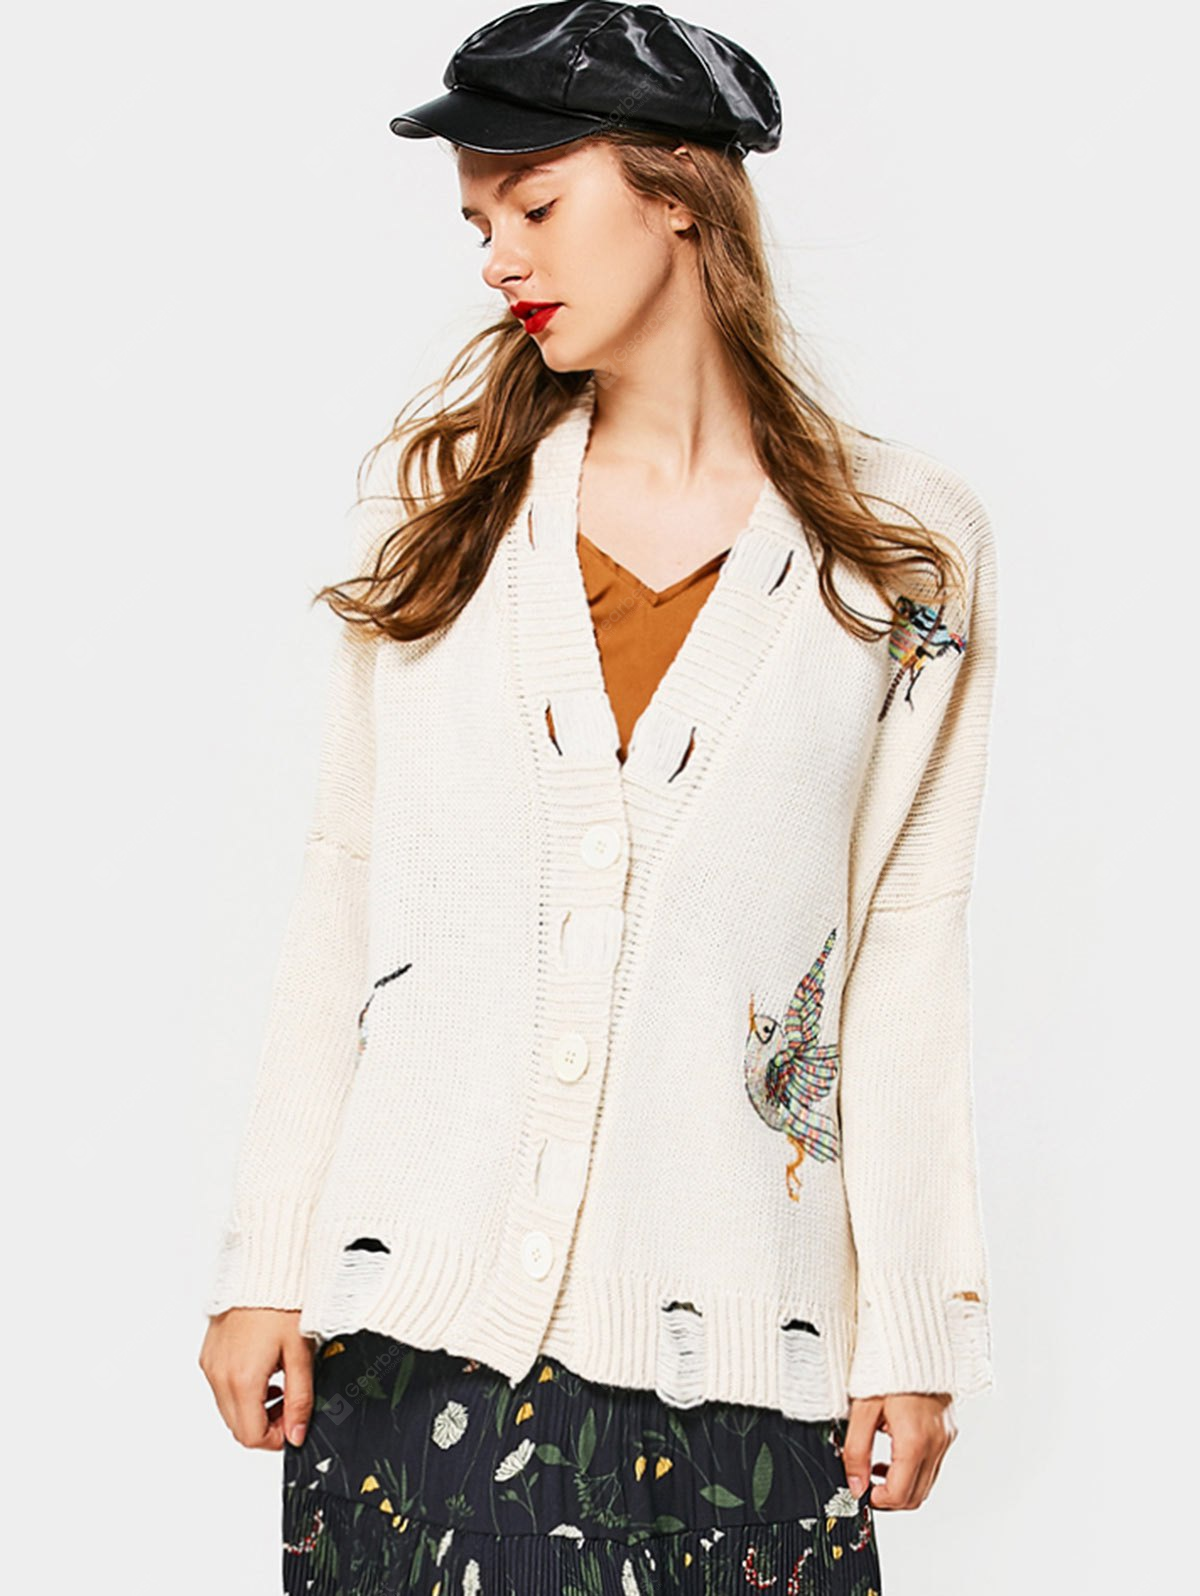 Embroidered Button Up Ripped Cardigan